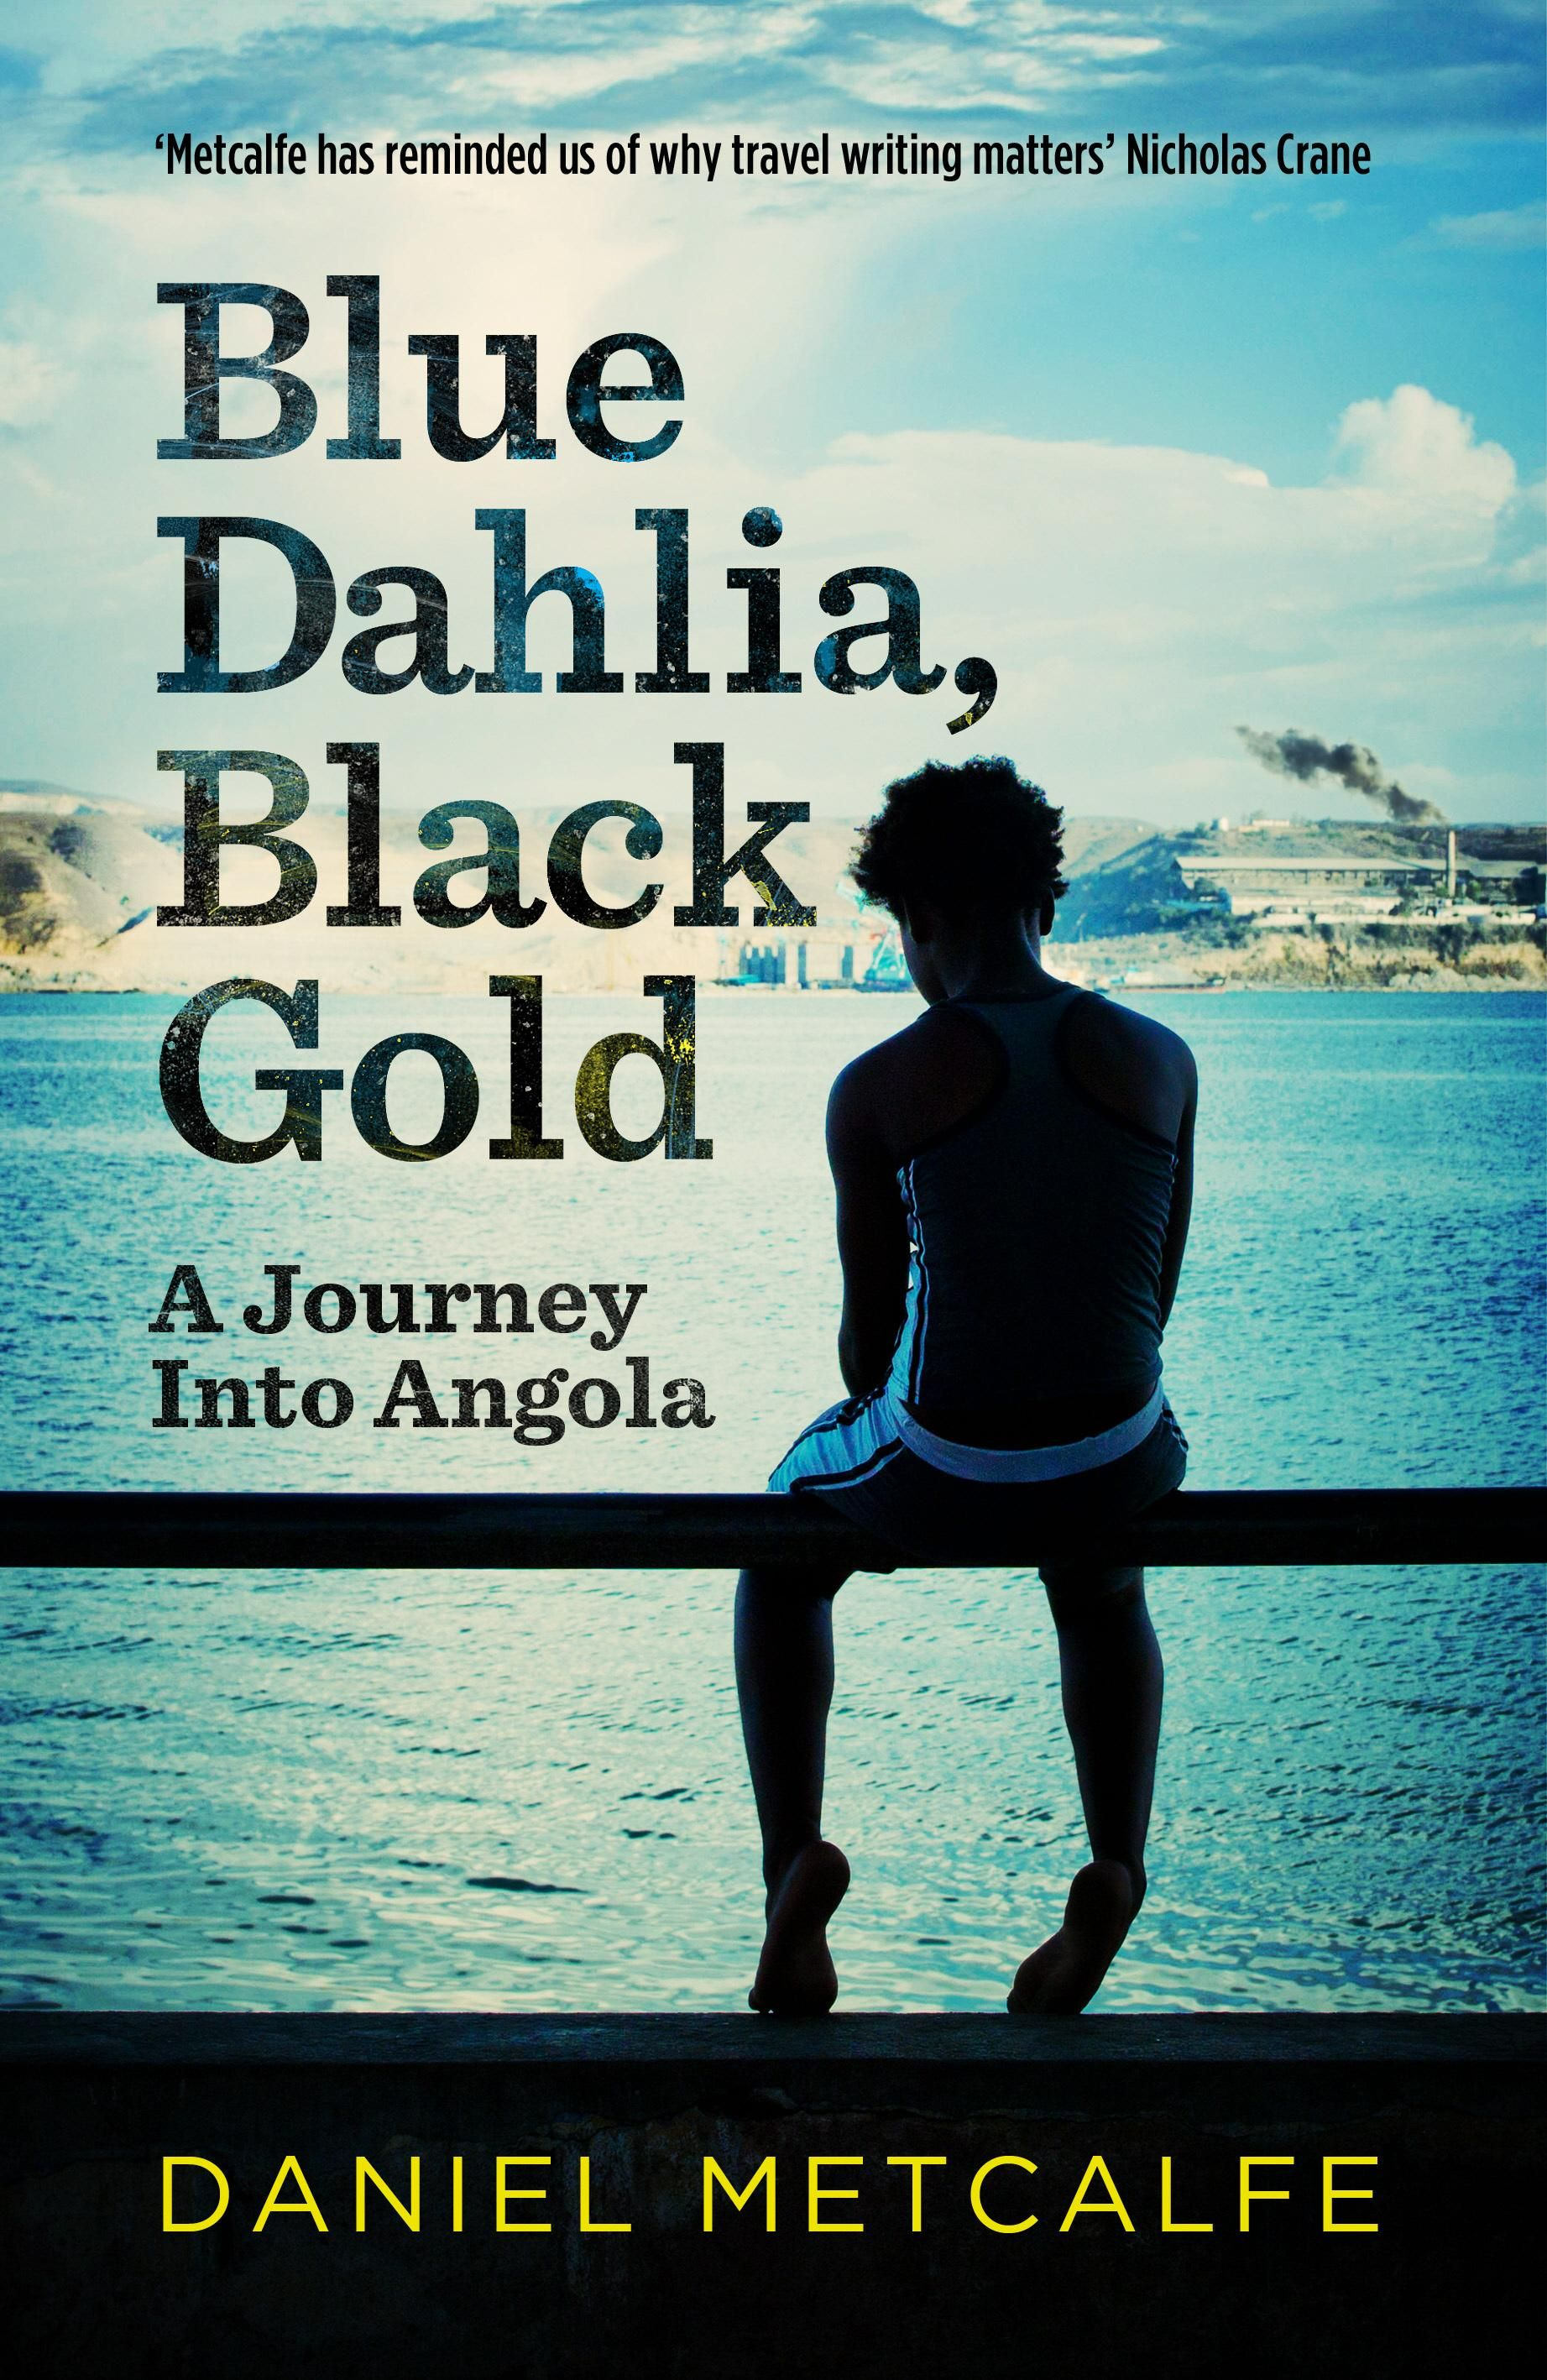 BLUE DAHLIA, BLACK GOLD, by Daniel Metcalfe: 'The authentic voice of a travel writer driven by curiosity, fascinated by the chosen country, determined to share his voice with the reader…[Metcalfe] gets down to what he his so good at: first-class reporting, descriptions of remarkable characters and easy-to-digest history lessons.' - Literary Review